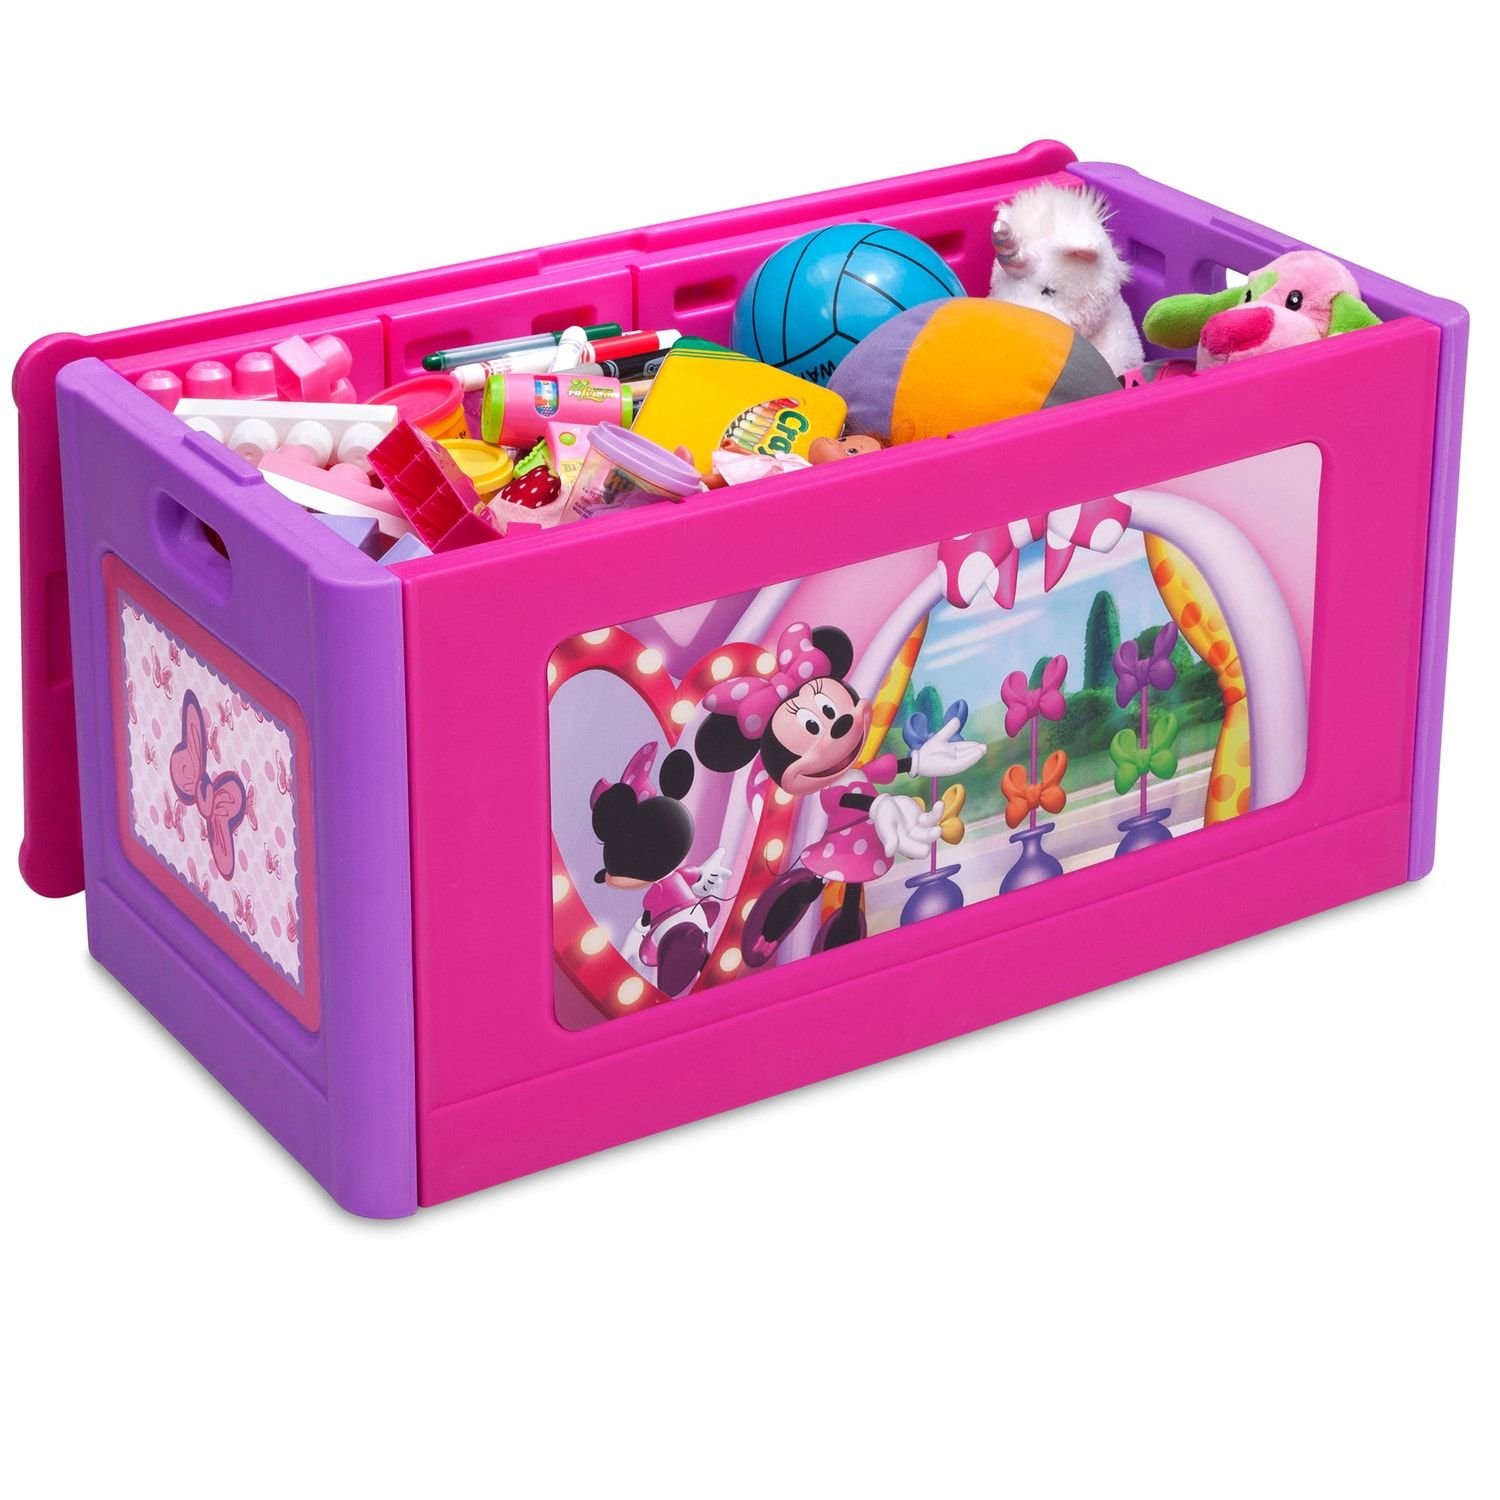 Pleasant Disneys Minnie Mouse Store And Organize Toy Box By Delta Pdpeps Interior Chair Design Pdpepsorg